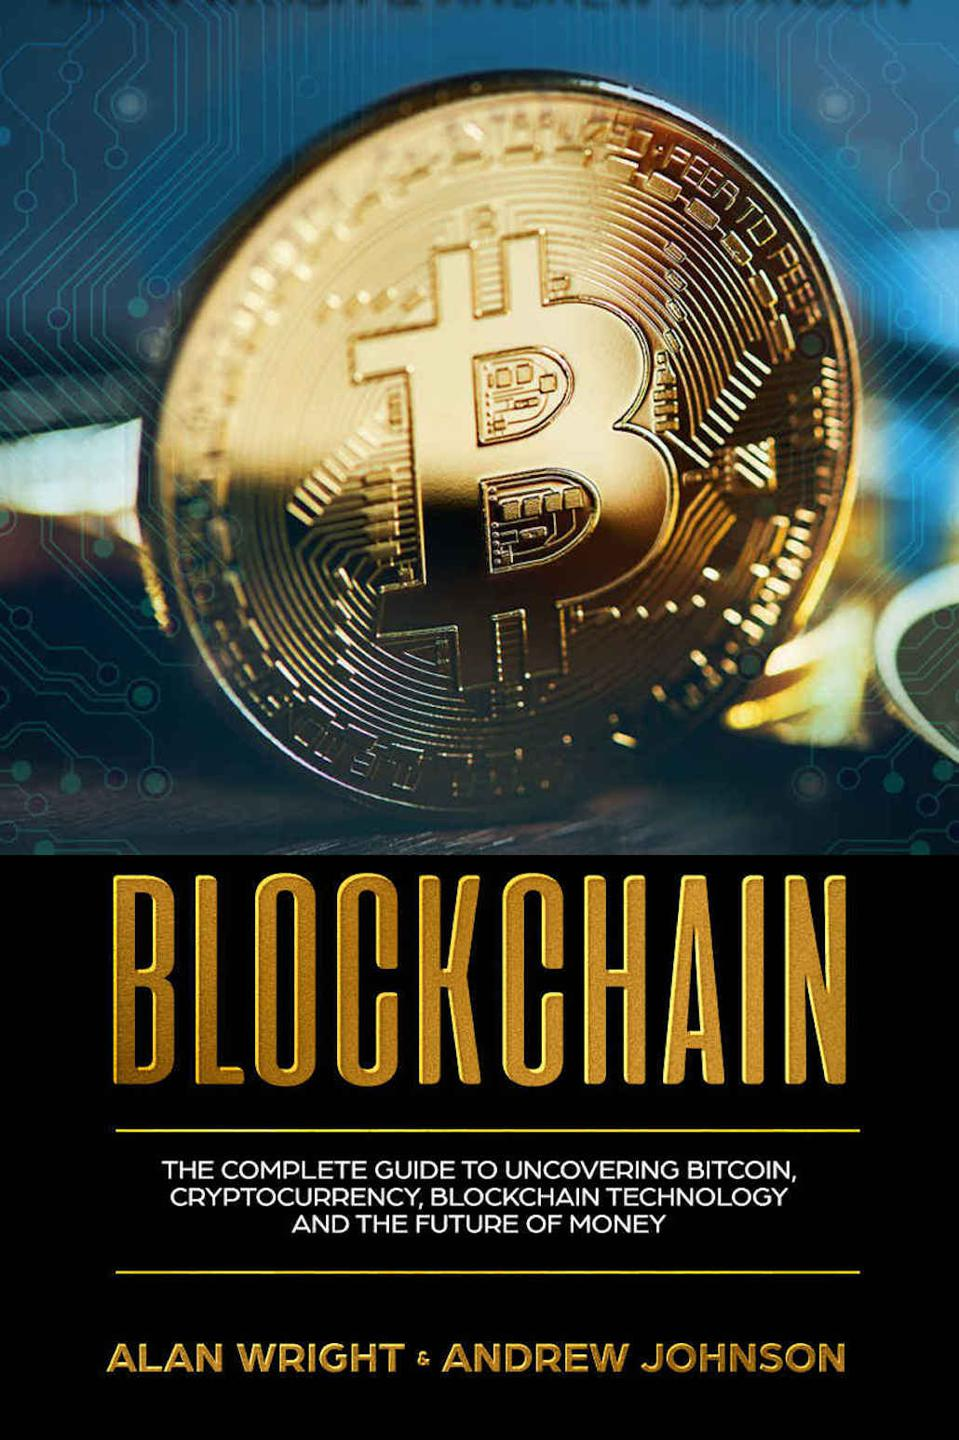 Blockchain: The Complete Guide to Uncovering Bitcoin, Cryptocurrency, Bitcoin Technology and the Future of Money by Alan Wright and Andrew Johnson